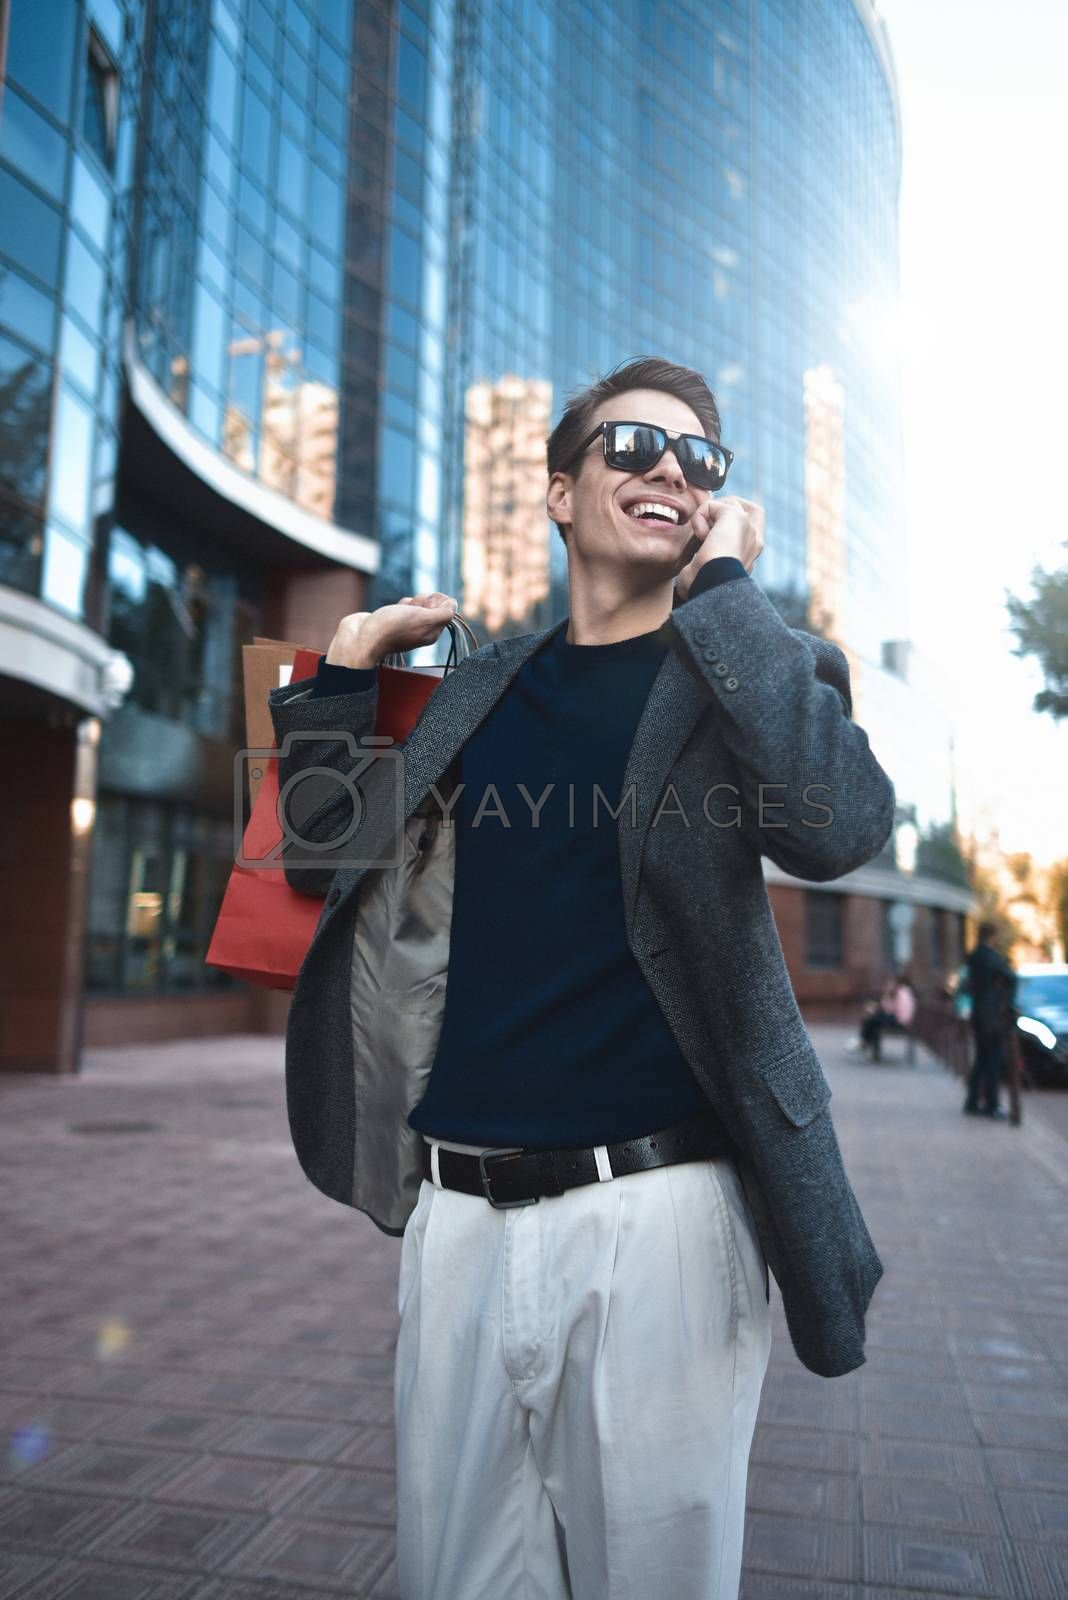 Positive cool guy with sunglasses and paper bags walking near showcase with reflection.